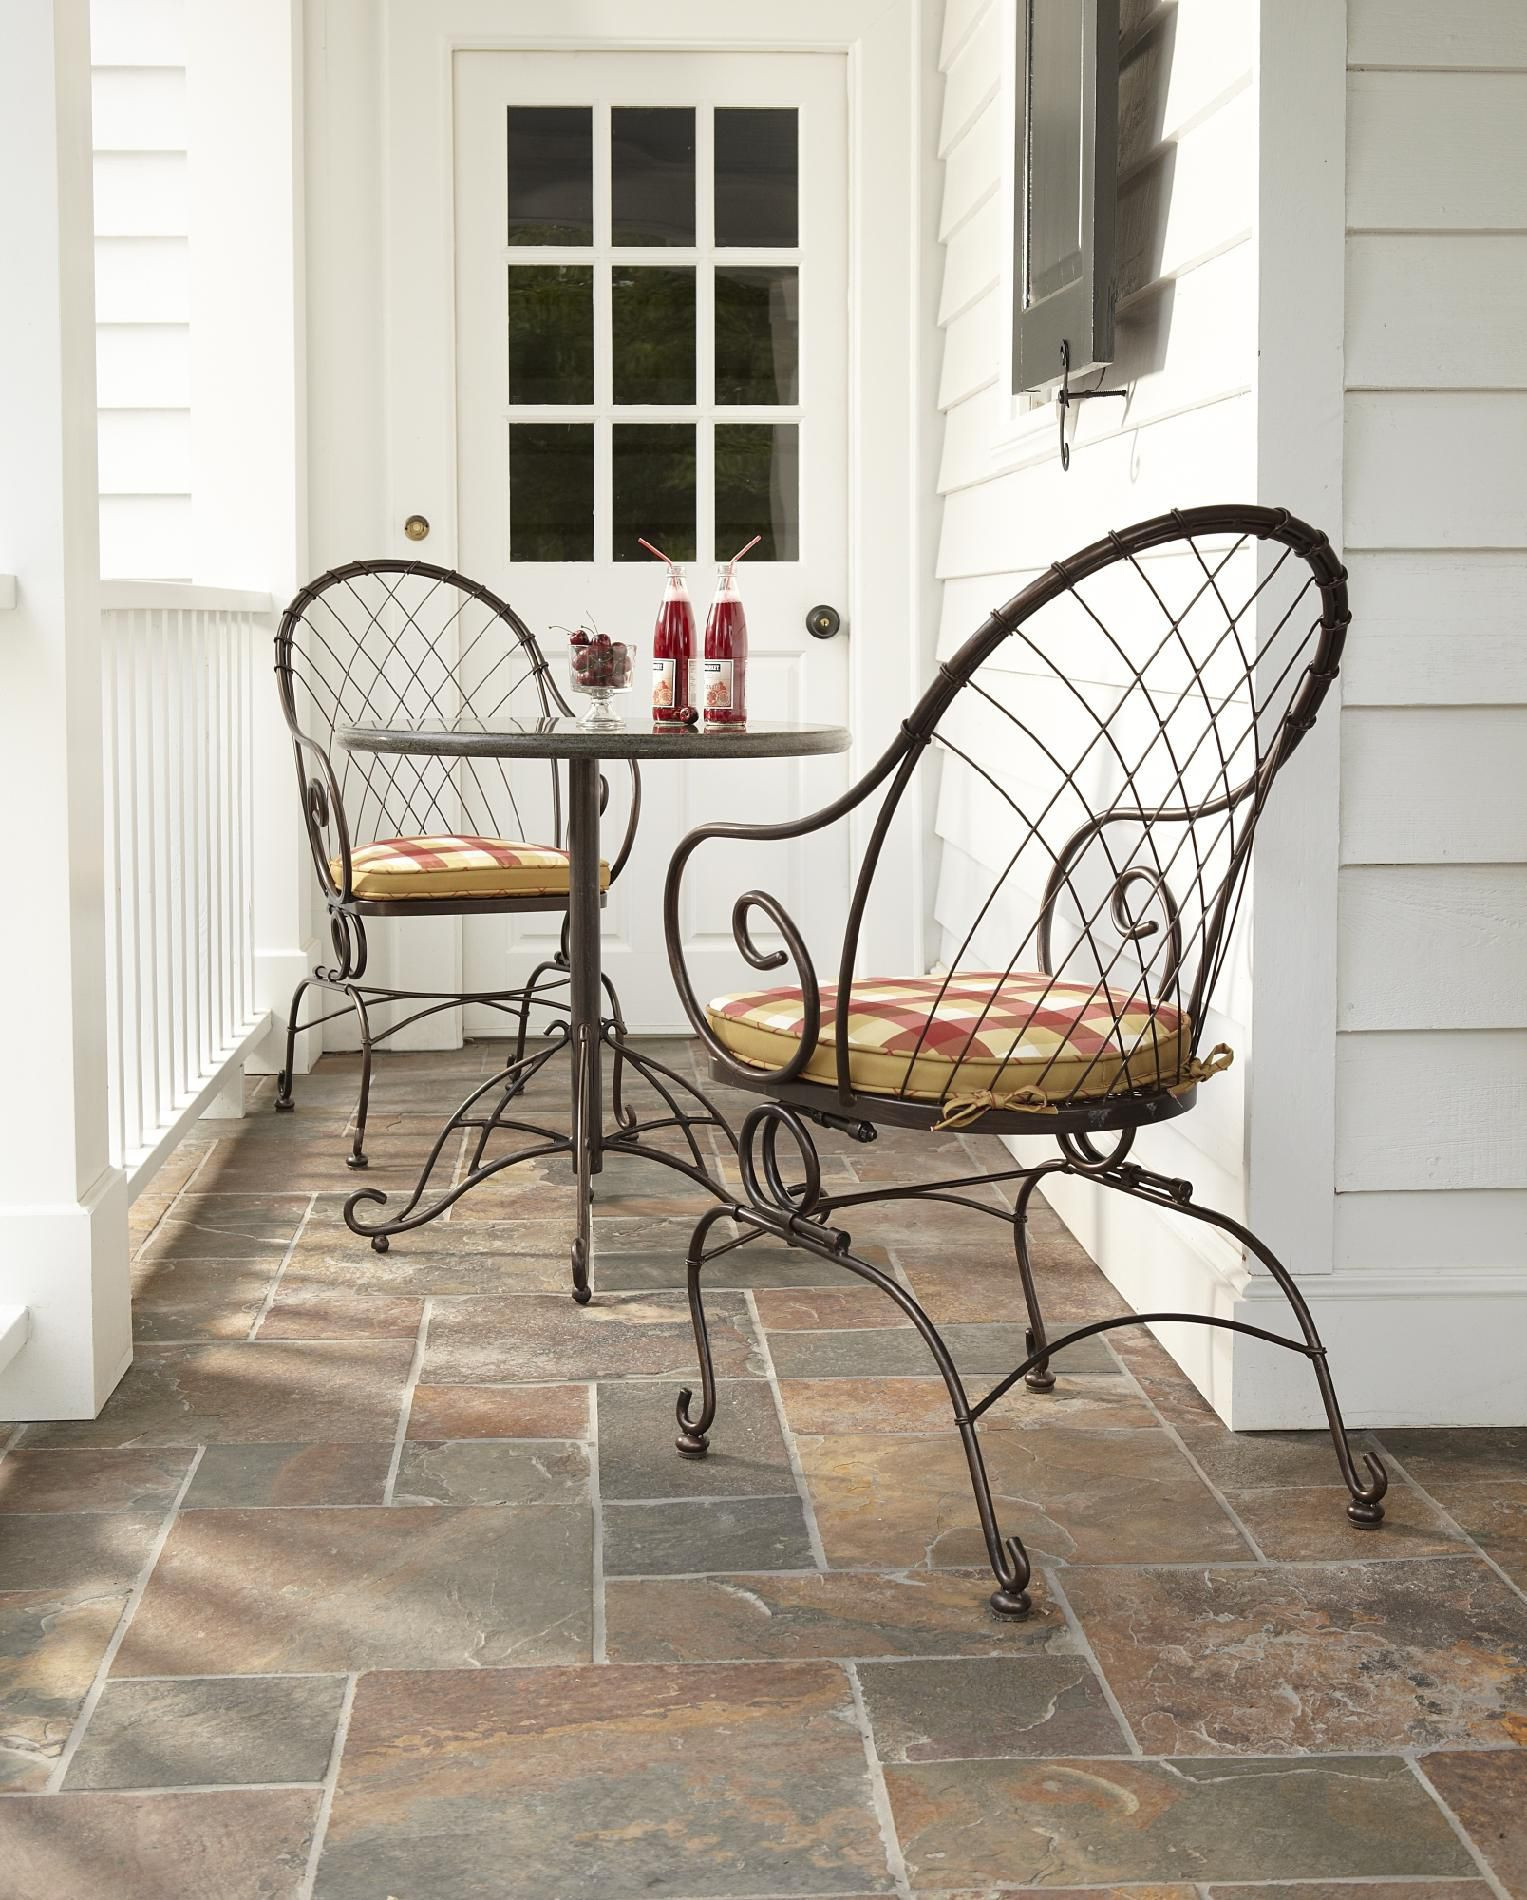 Country Living Cherry Valley Bistro Motion Chairs - 2pk